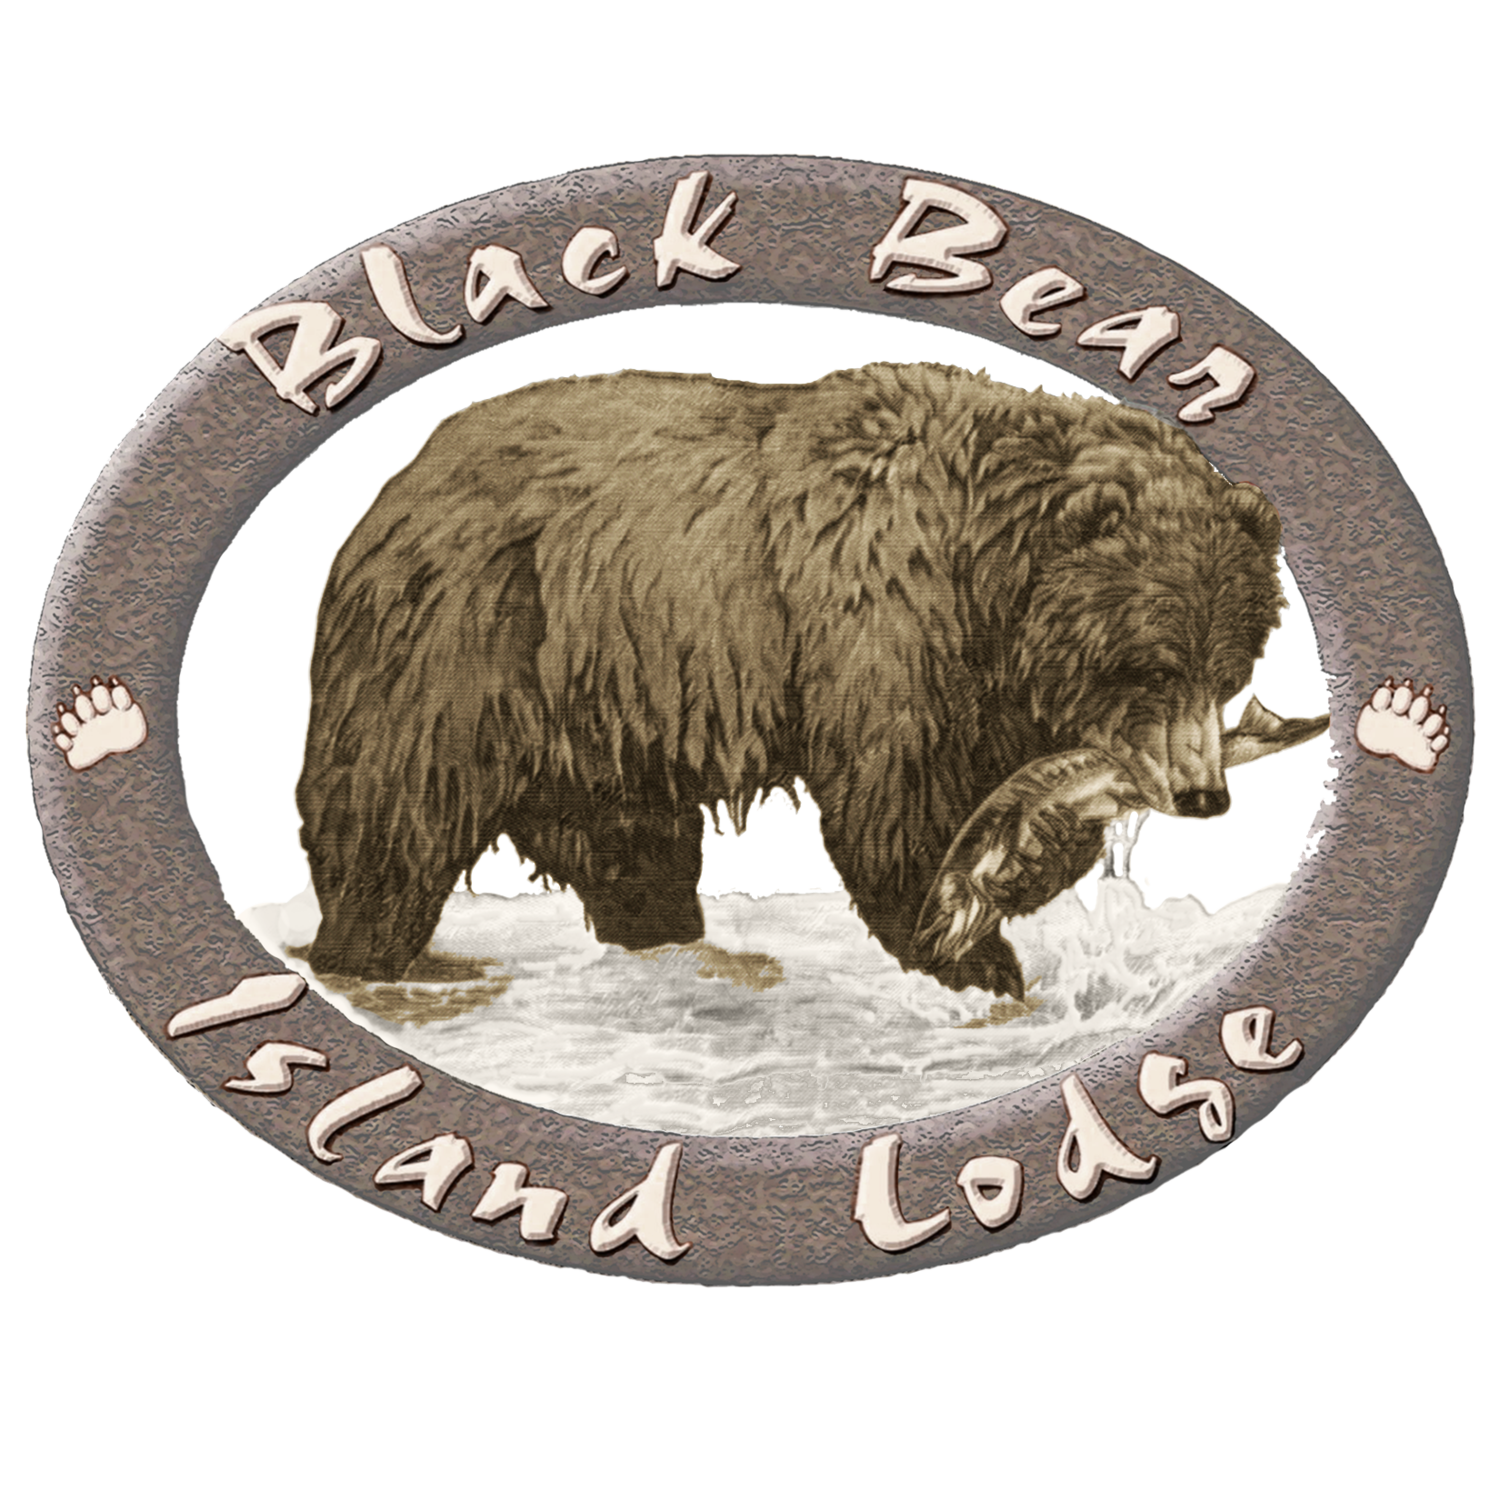 Black Bear Island Lodge